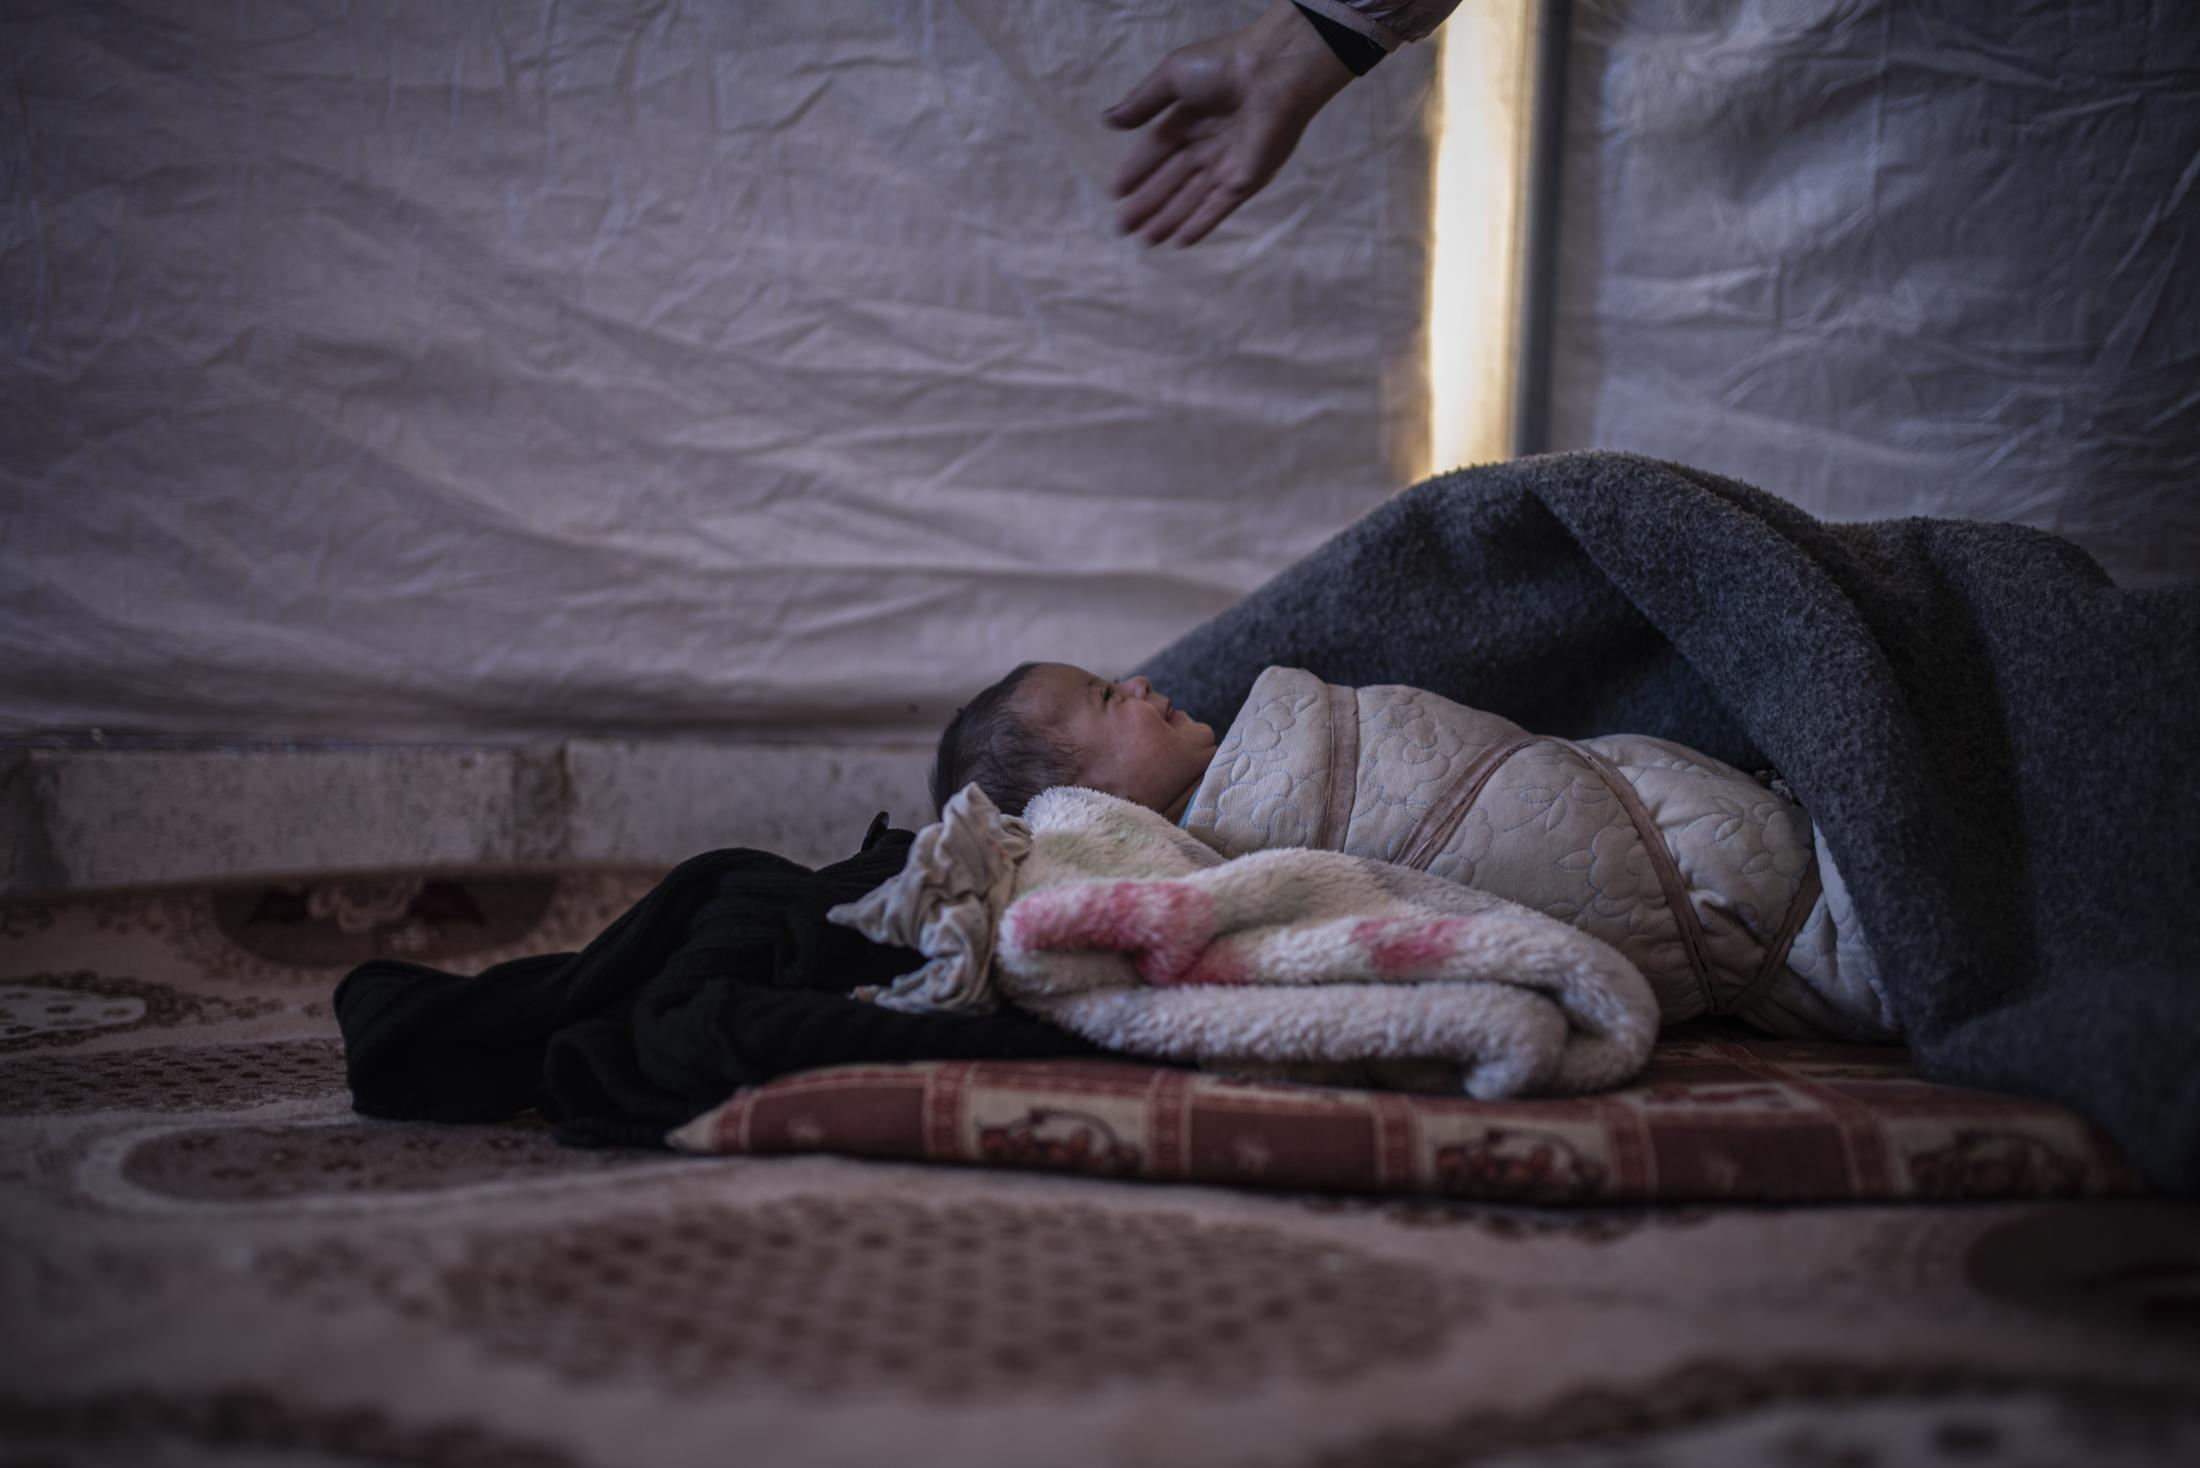 Ayah (6 months), a girl with Down Syndrome laughing with her aunt inside the tent of her family,who fleed from the outskirts of Serekaniye, in Washokani refugee camp. After the withdrawal of US troops from northern Syria in October 2019, Turkey launched an offensive against the predominantly Kurdish areas in the northeast of the country along Islamist forces. Calls for war crimes investigations into the conduct of Ankara-backed militias are mounting ever since. (Andoni Lubaki / Euskal Fondoa)